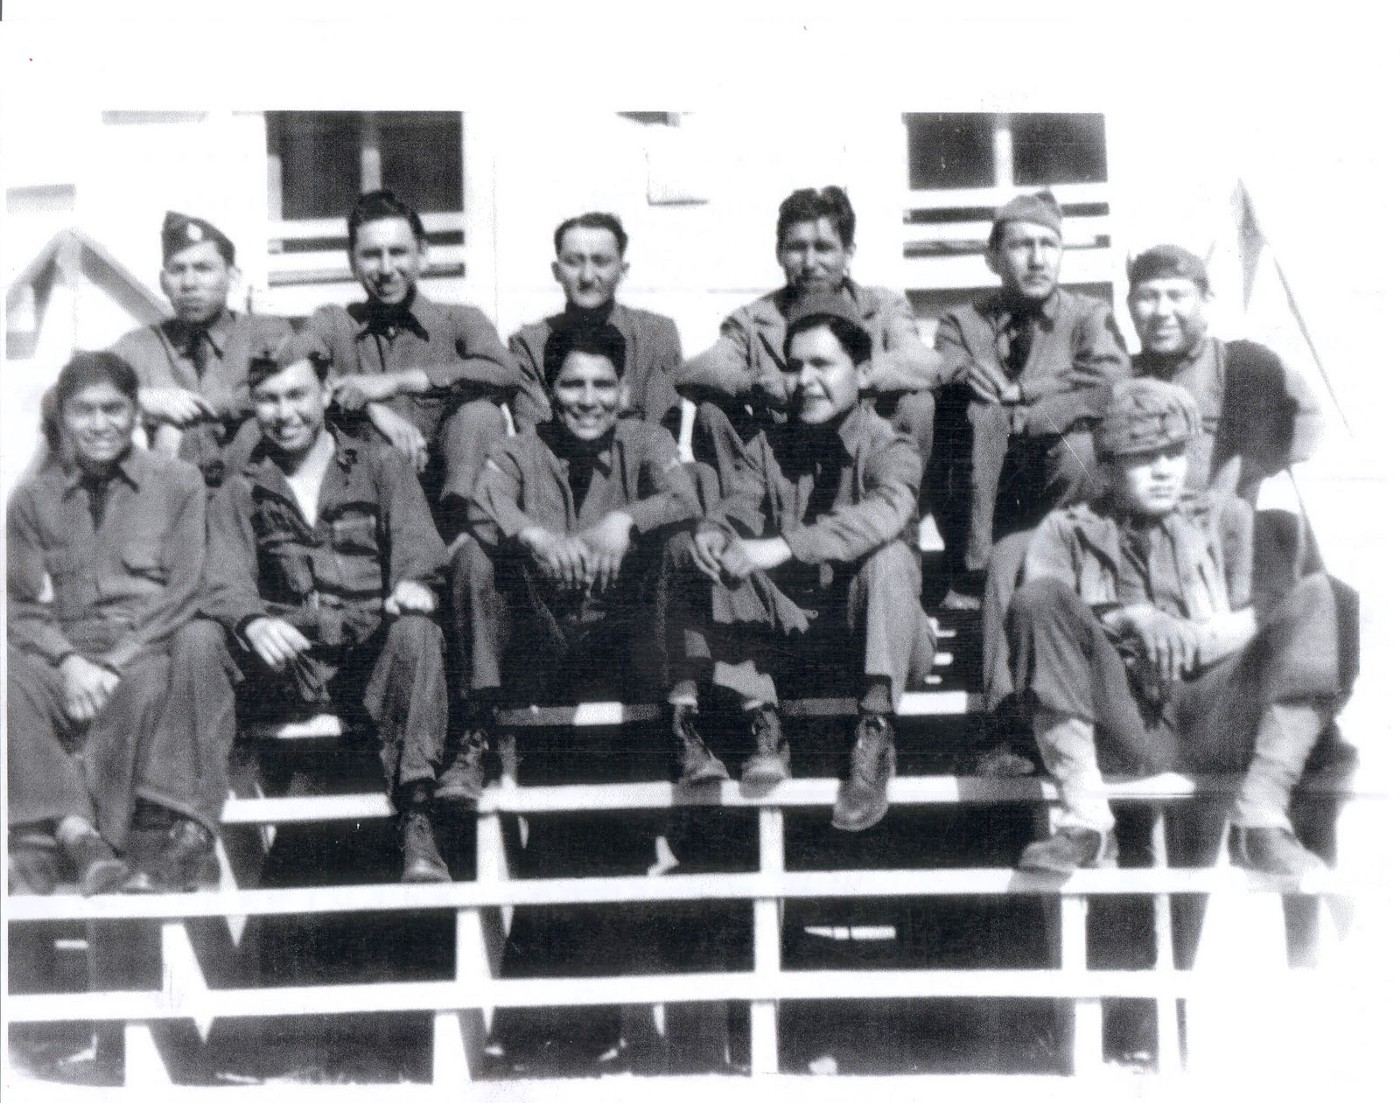 A group of Comanche soldiers in uniform sitting for a photo